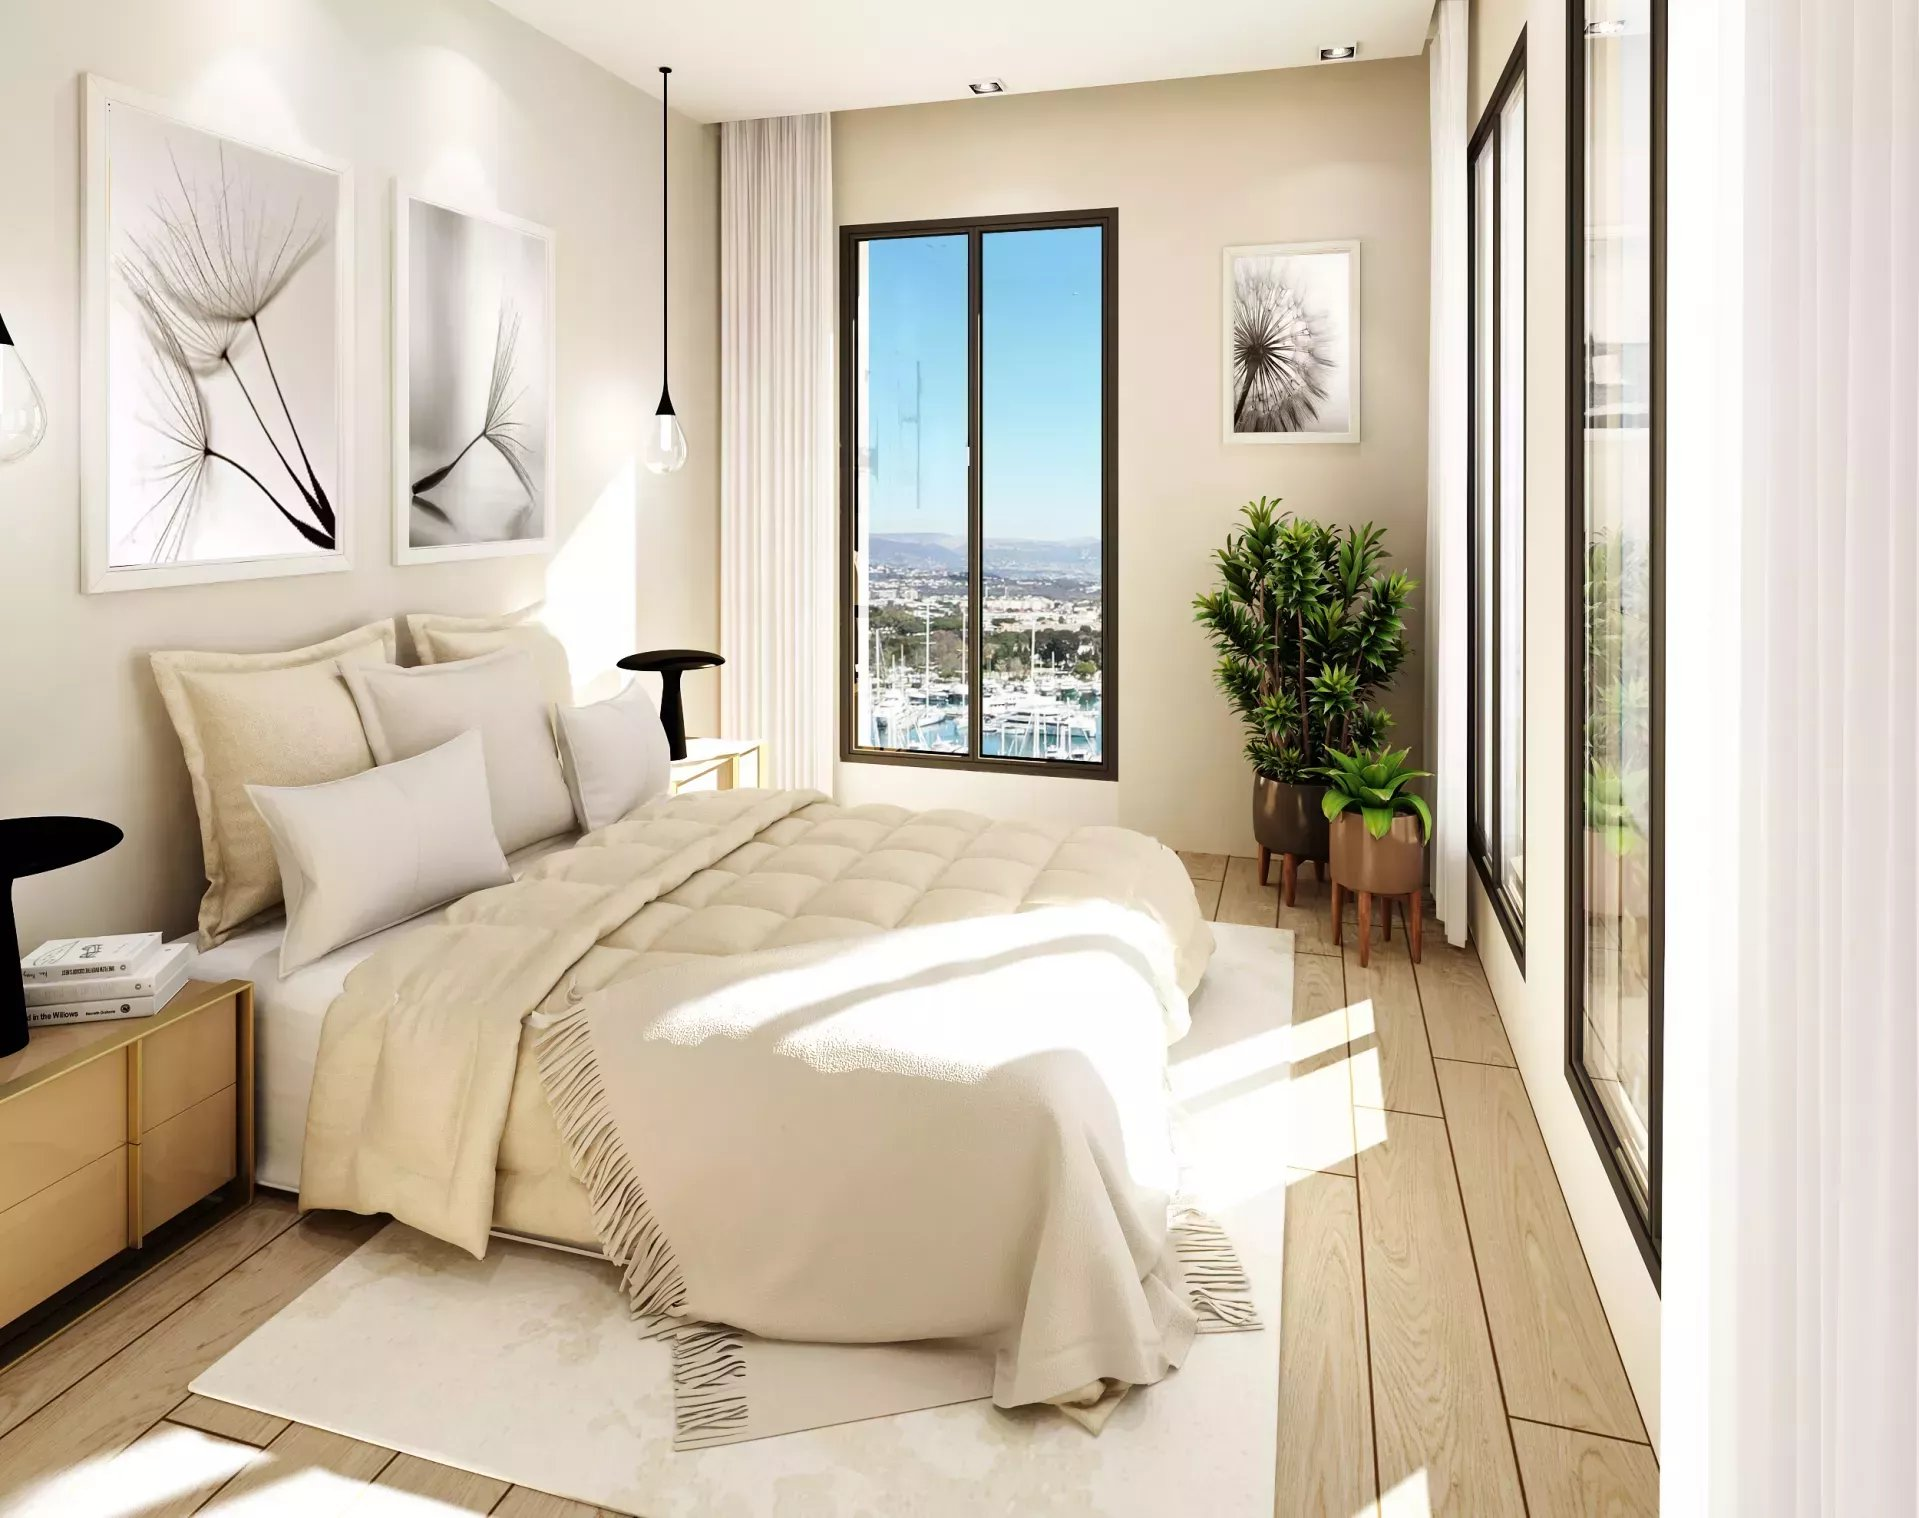 VIEIL ANTIBES PORT VAUBAN - 2P 37m2 Balcony Sea View and Port